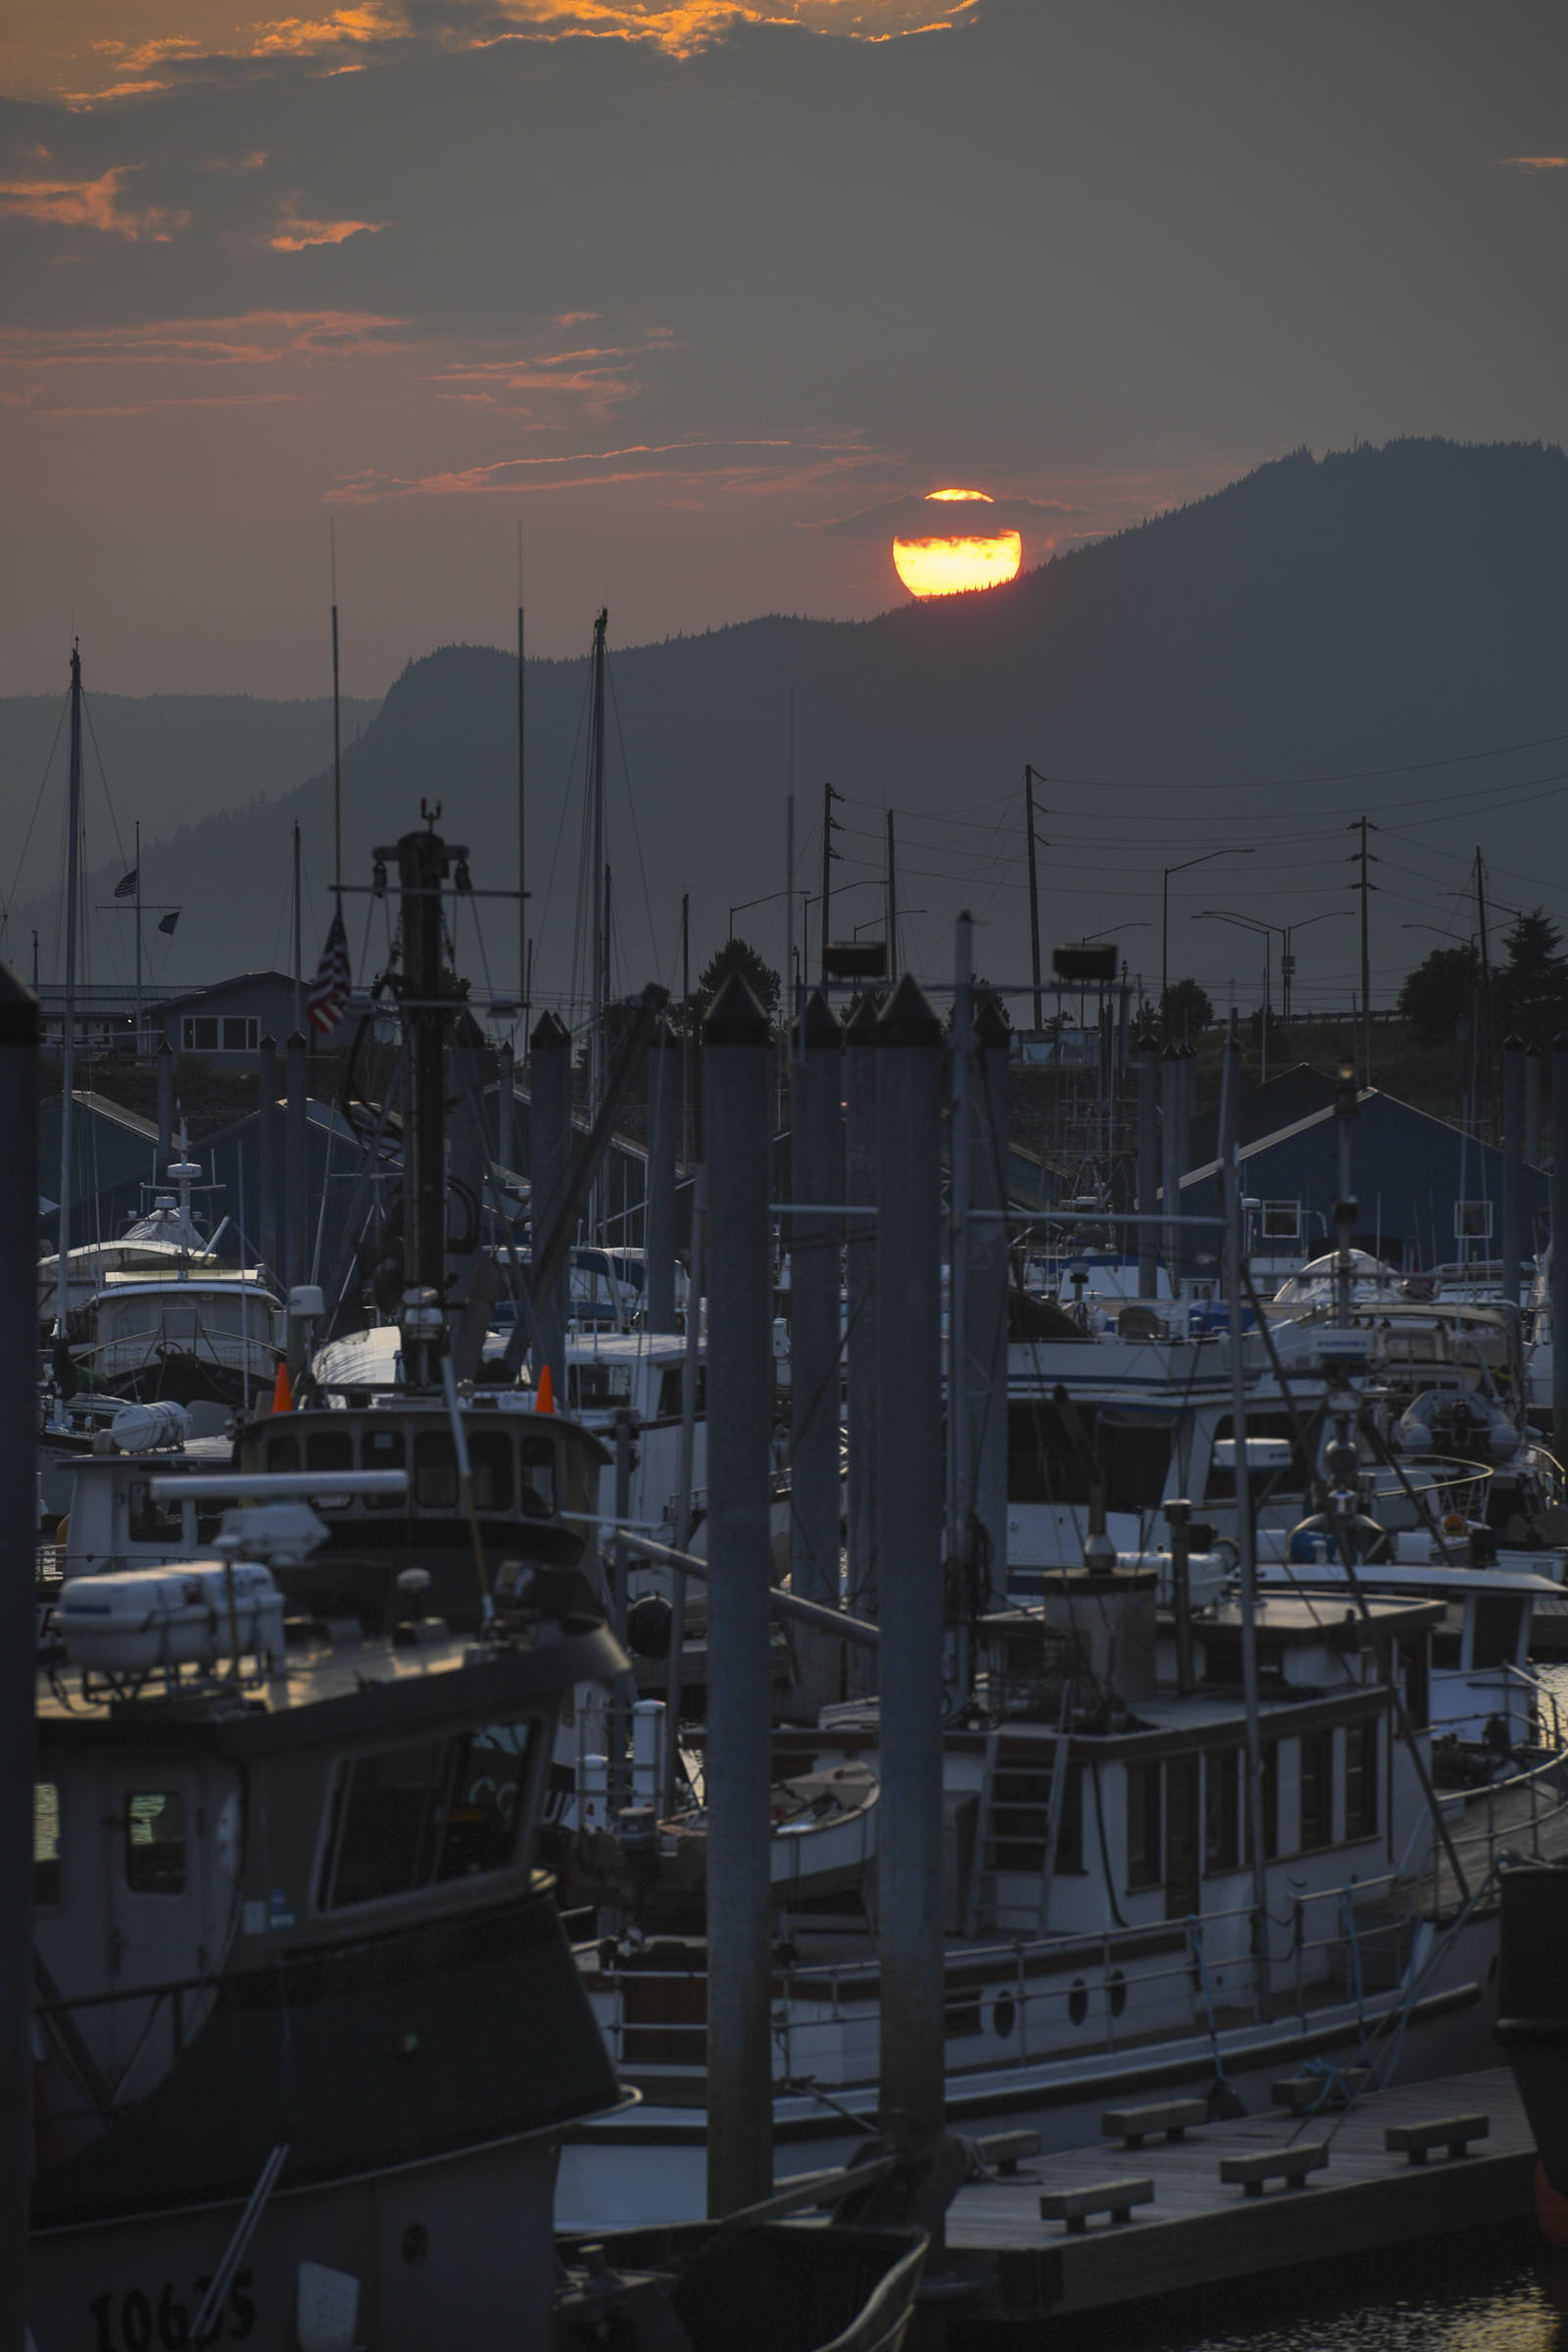 The sun sets over Aurora Harbor on Wednesday, July 3, 2019. (Michael Penn | Juneau Empire)